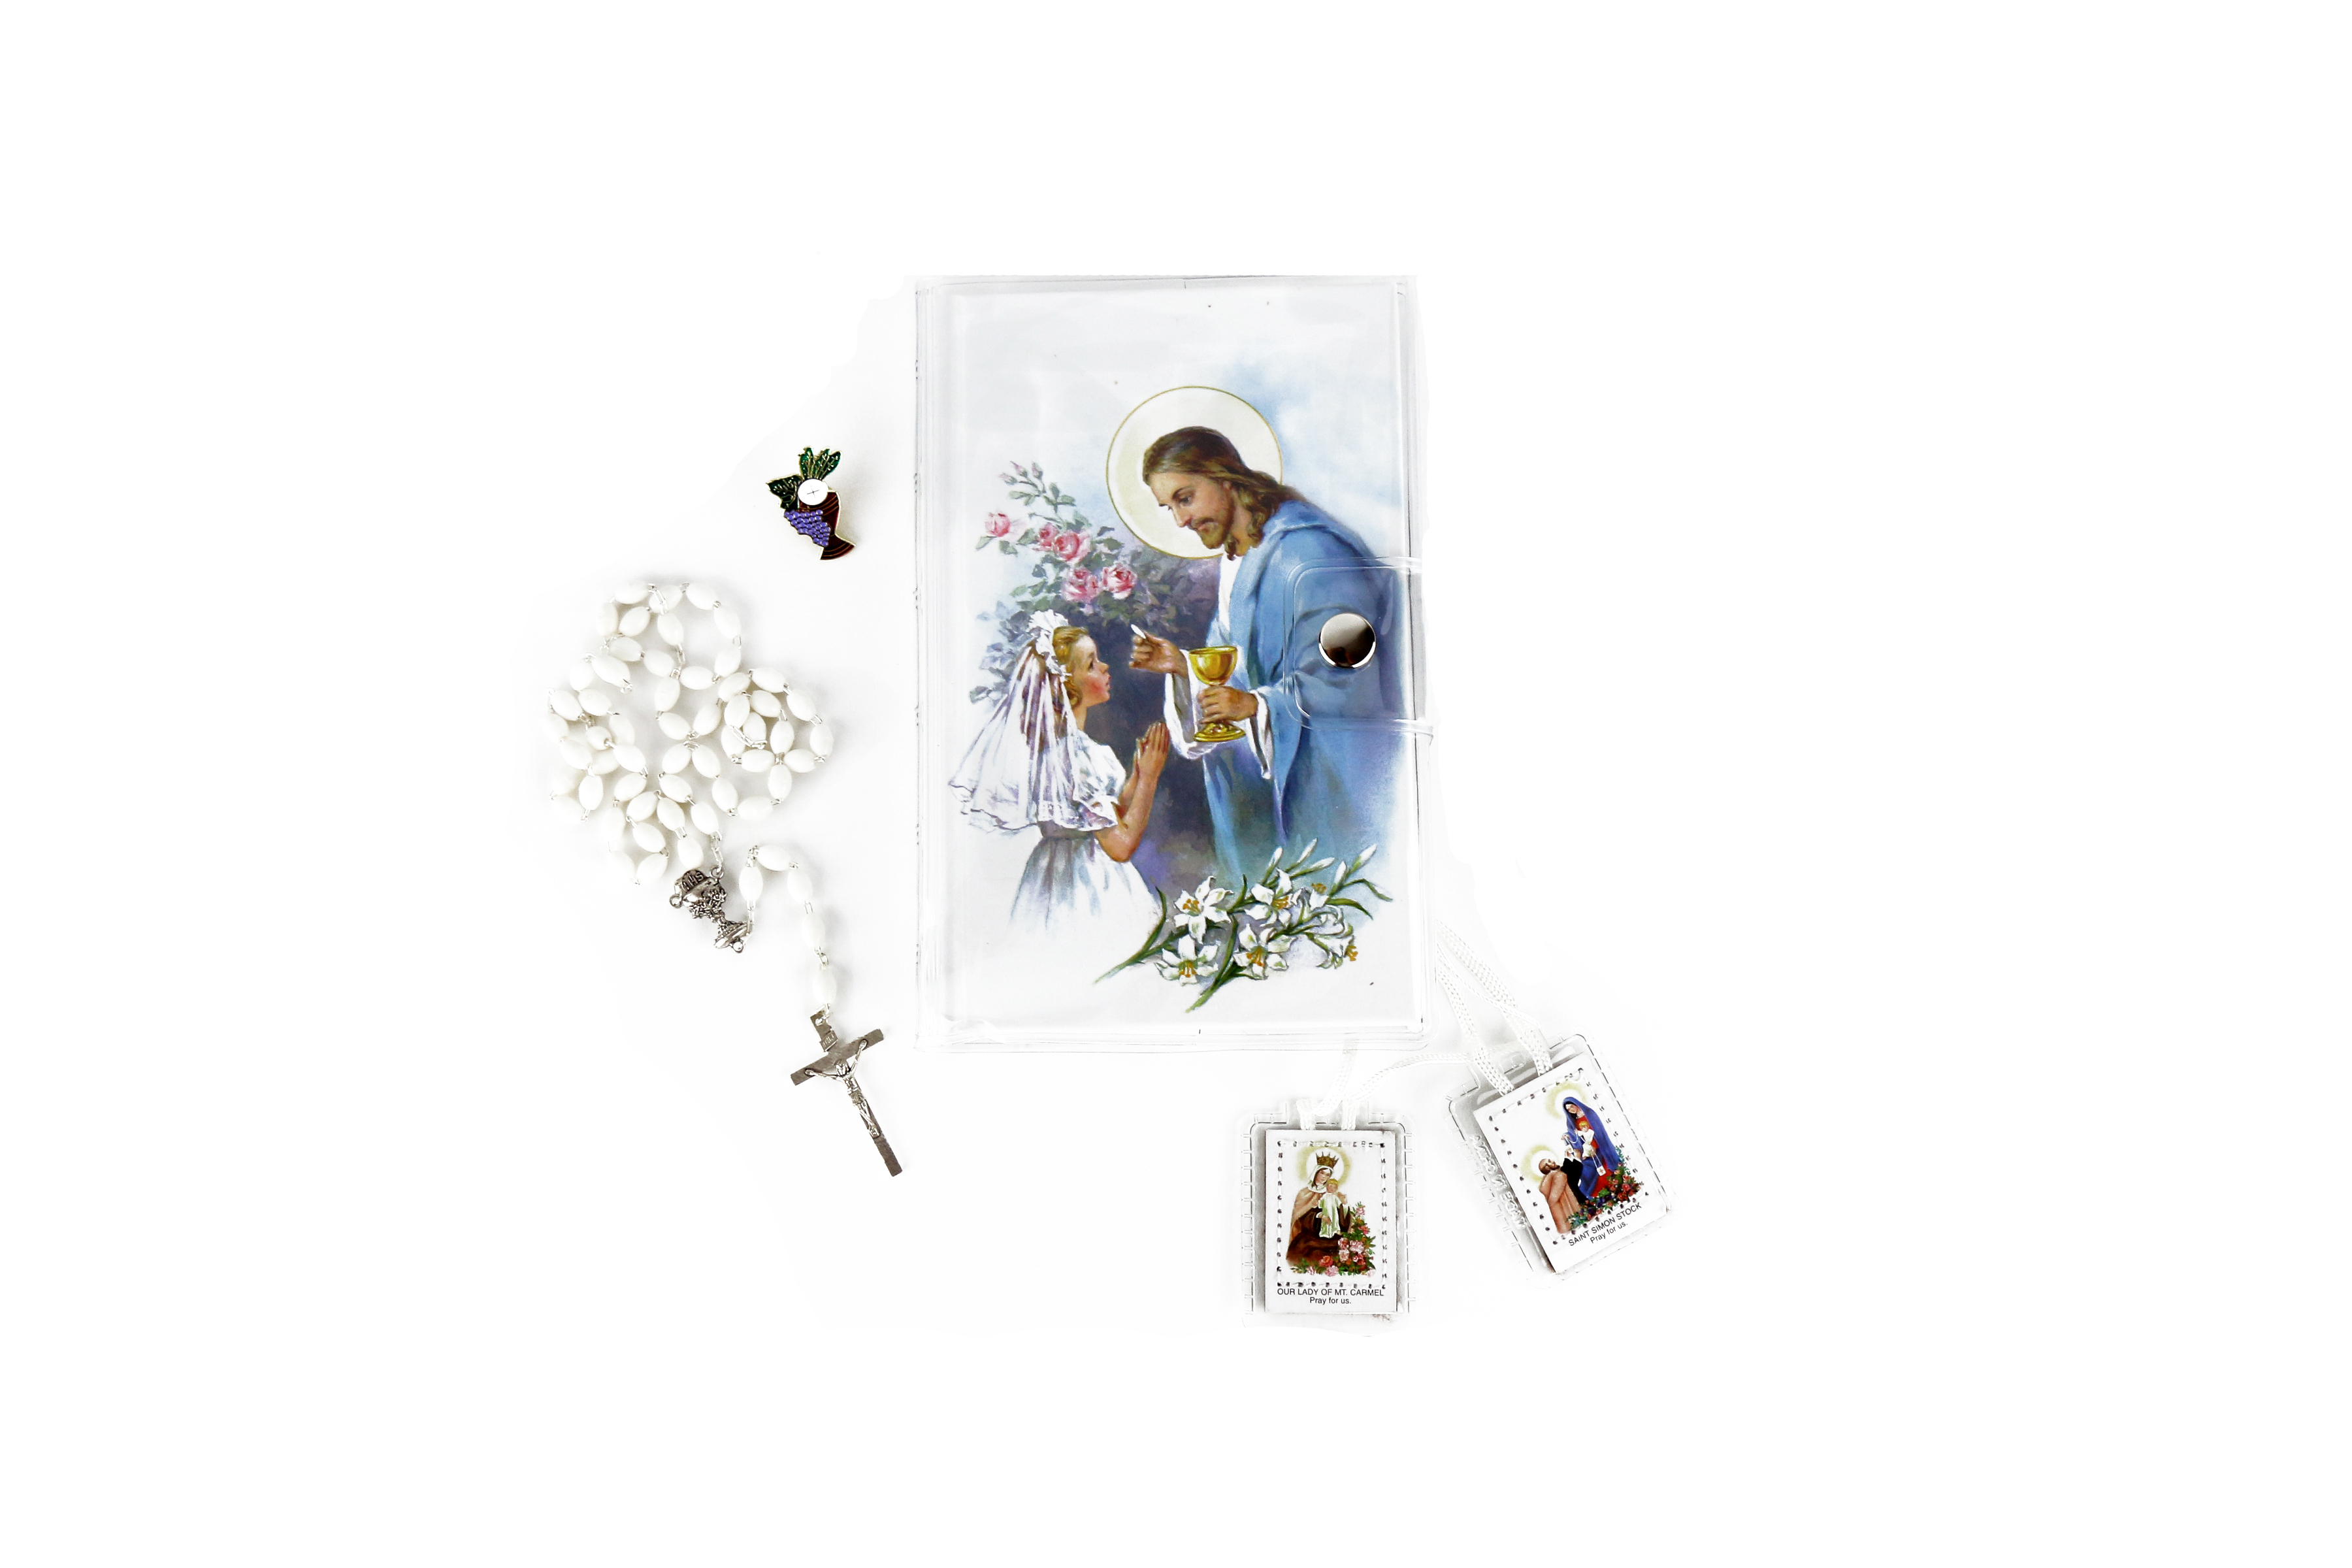 ensemble de première communion / First communion set for girls